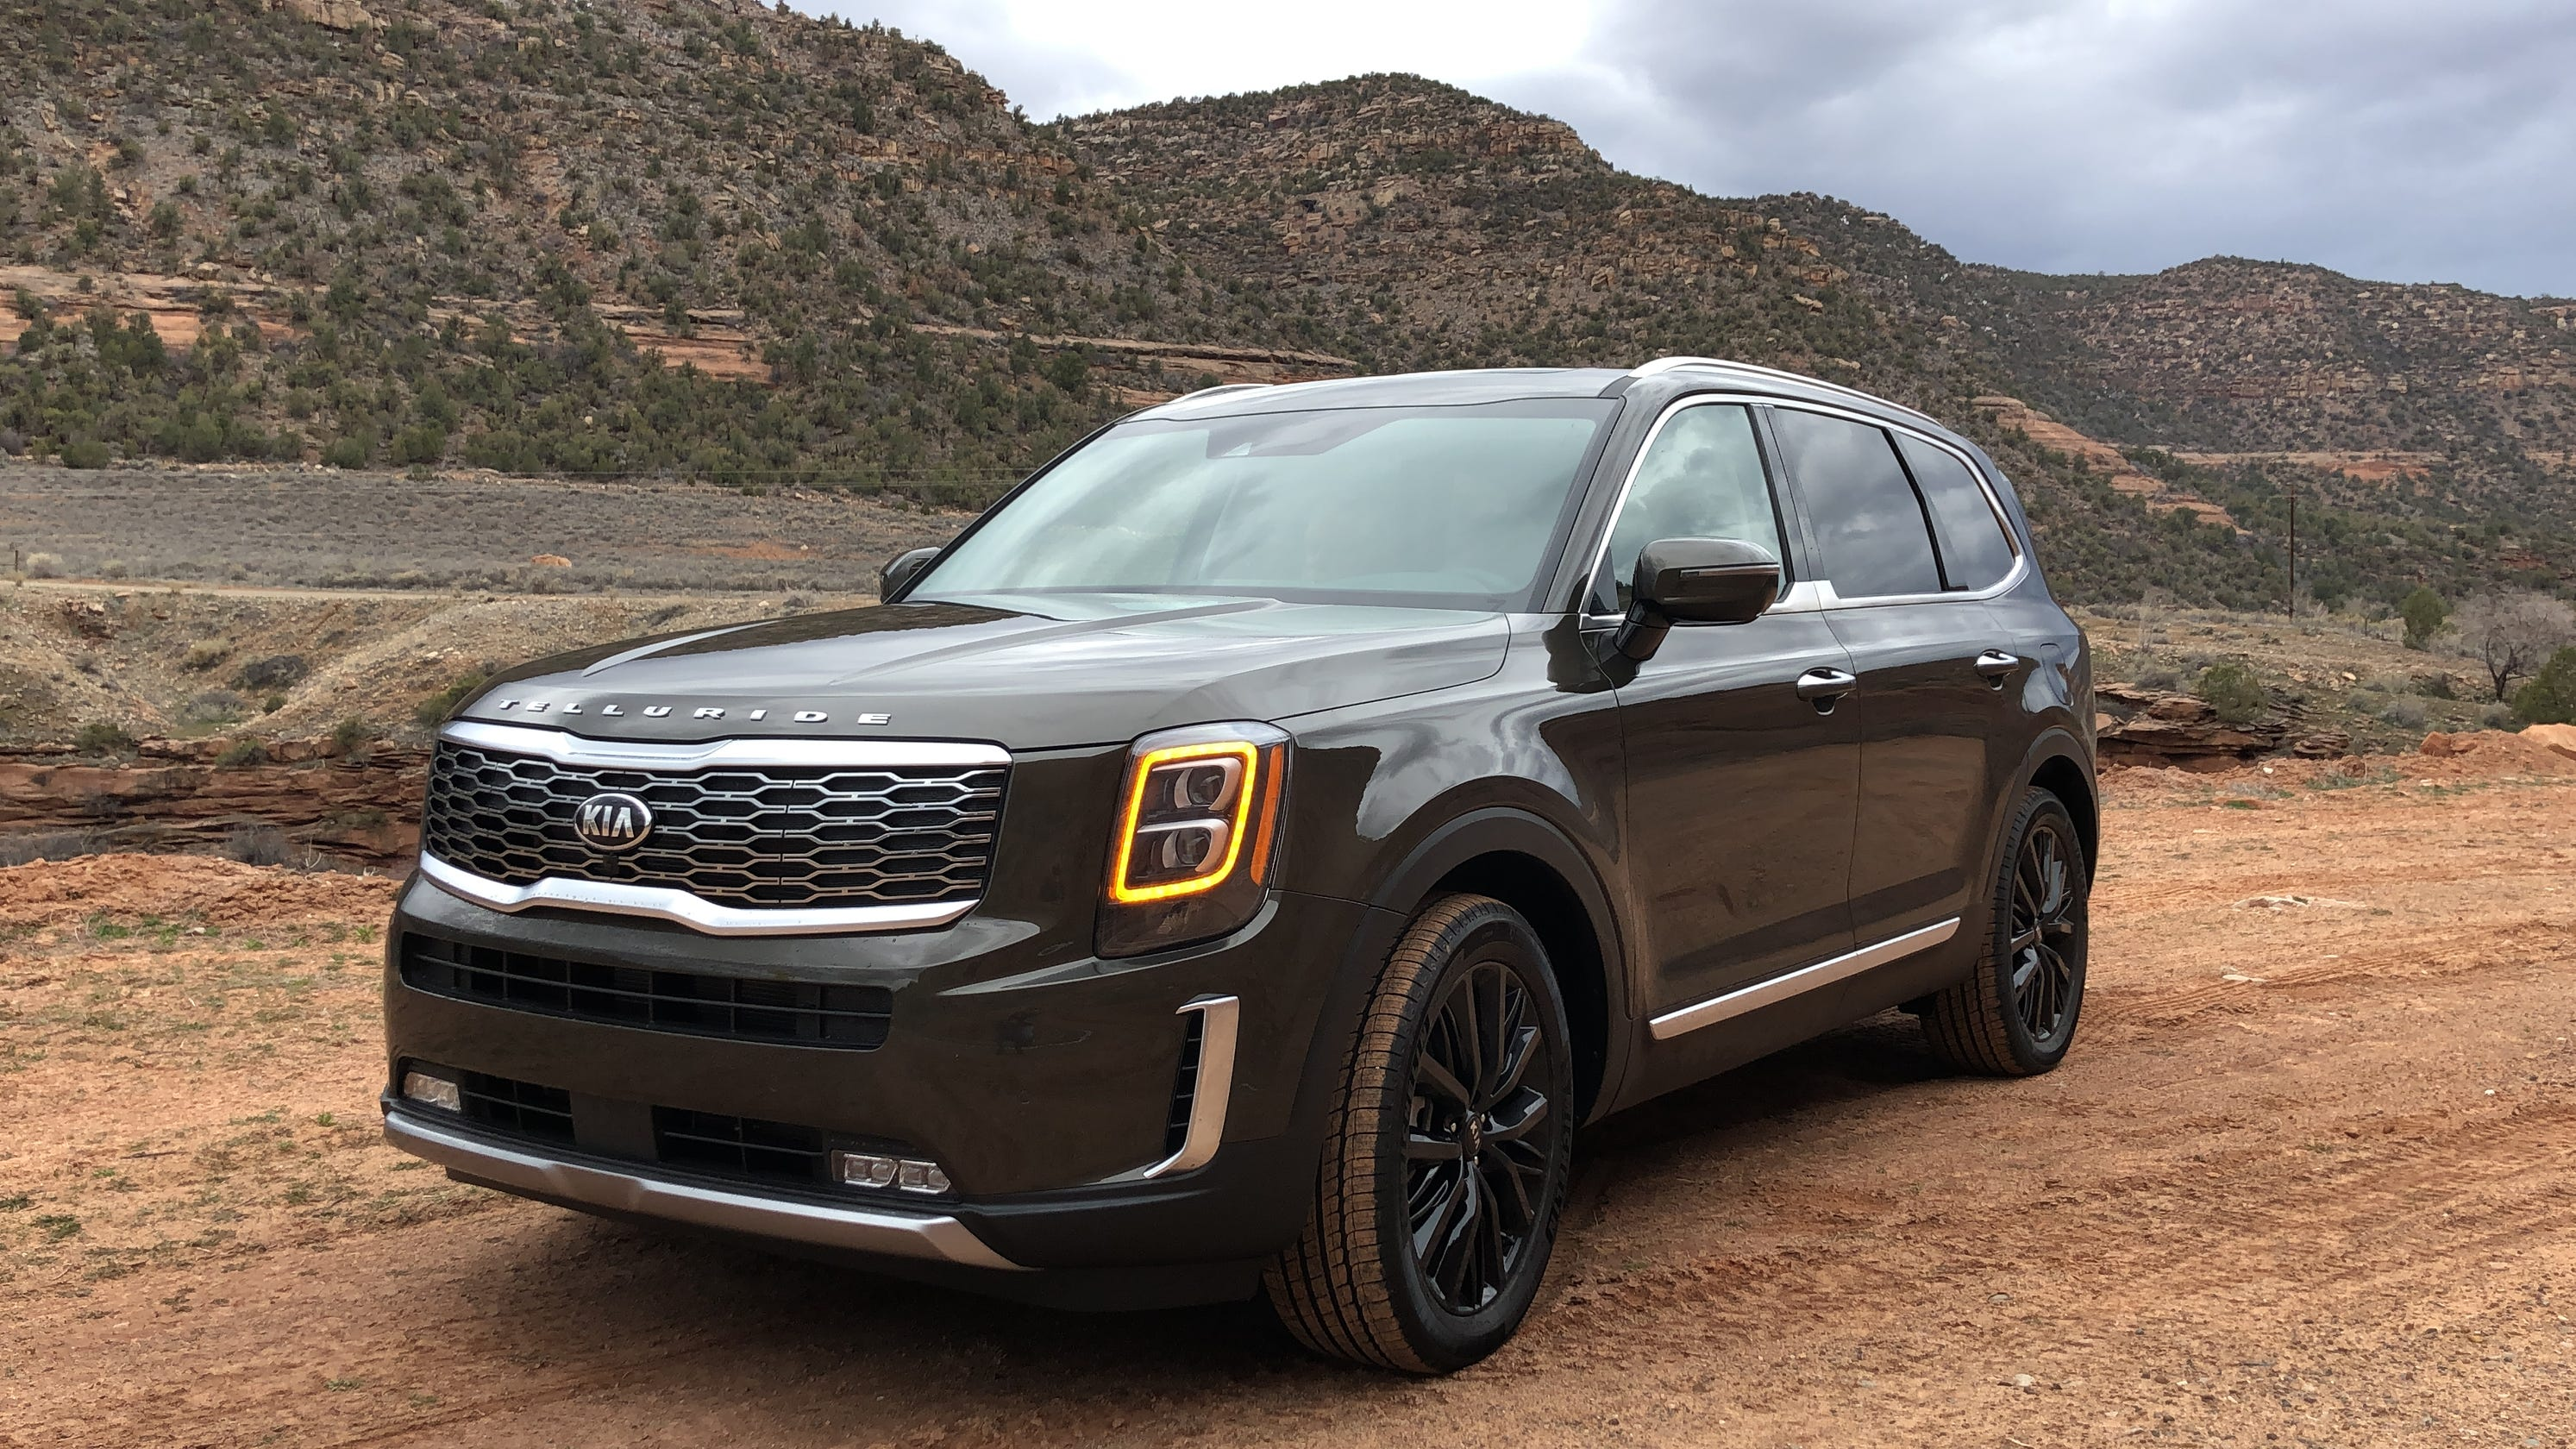 2020 Kia Telluride leaves Honda Pilot, other SUVs in its dust